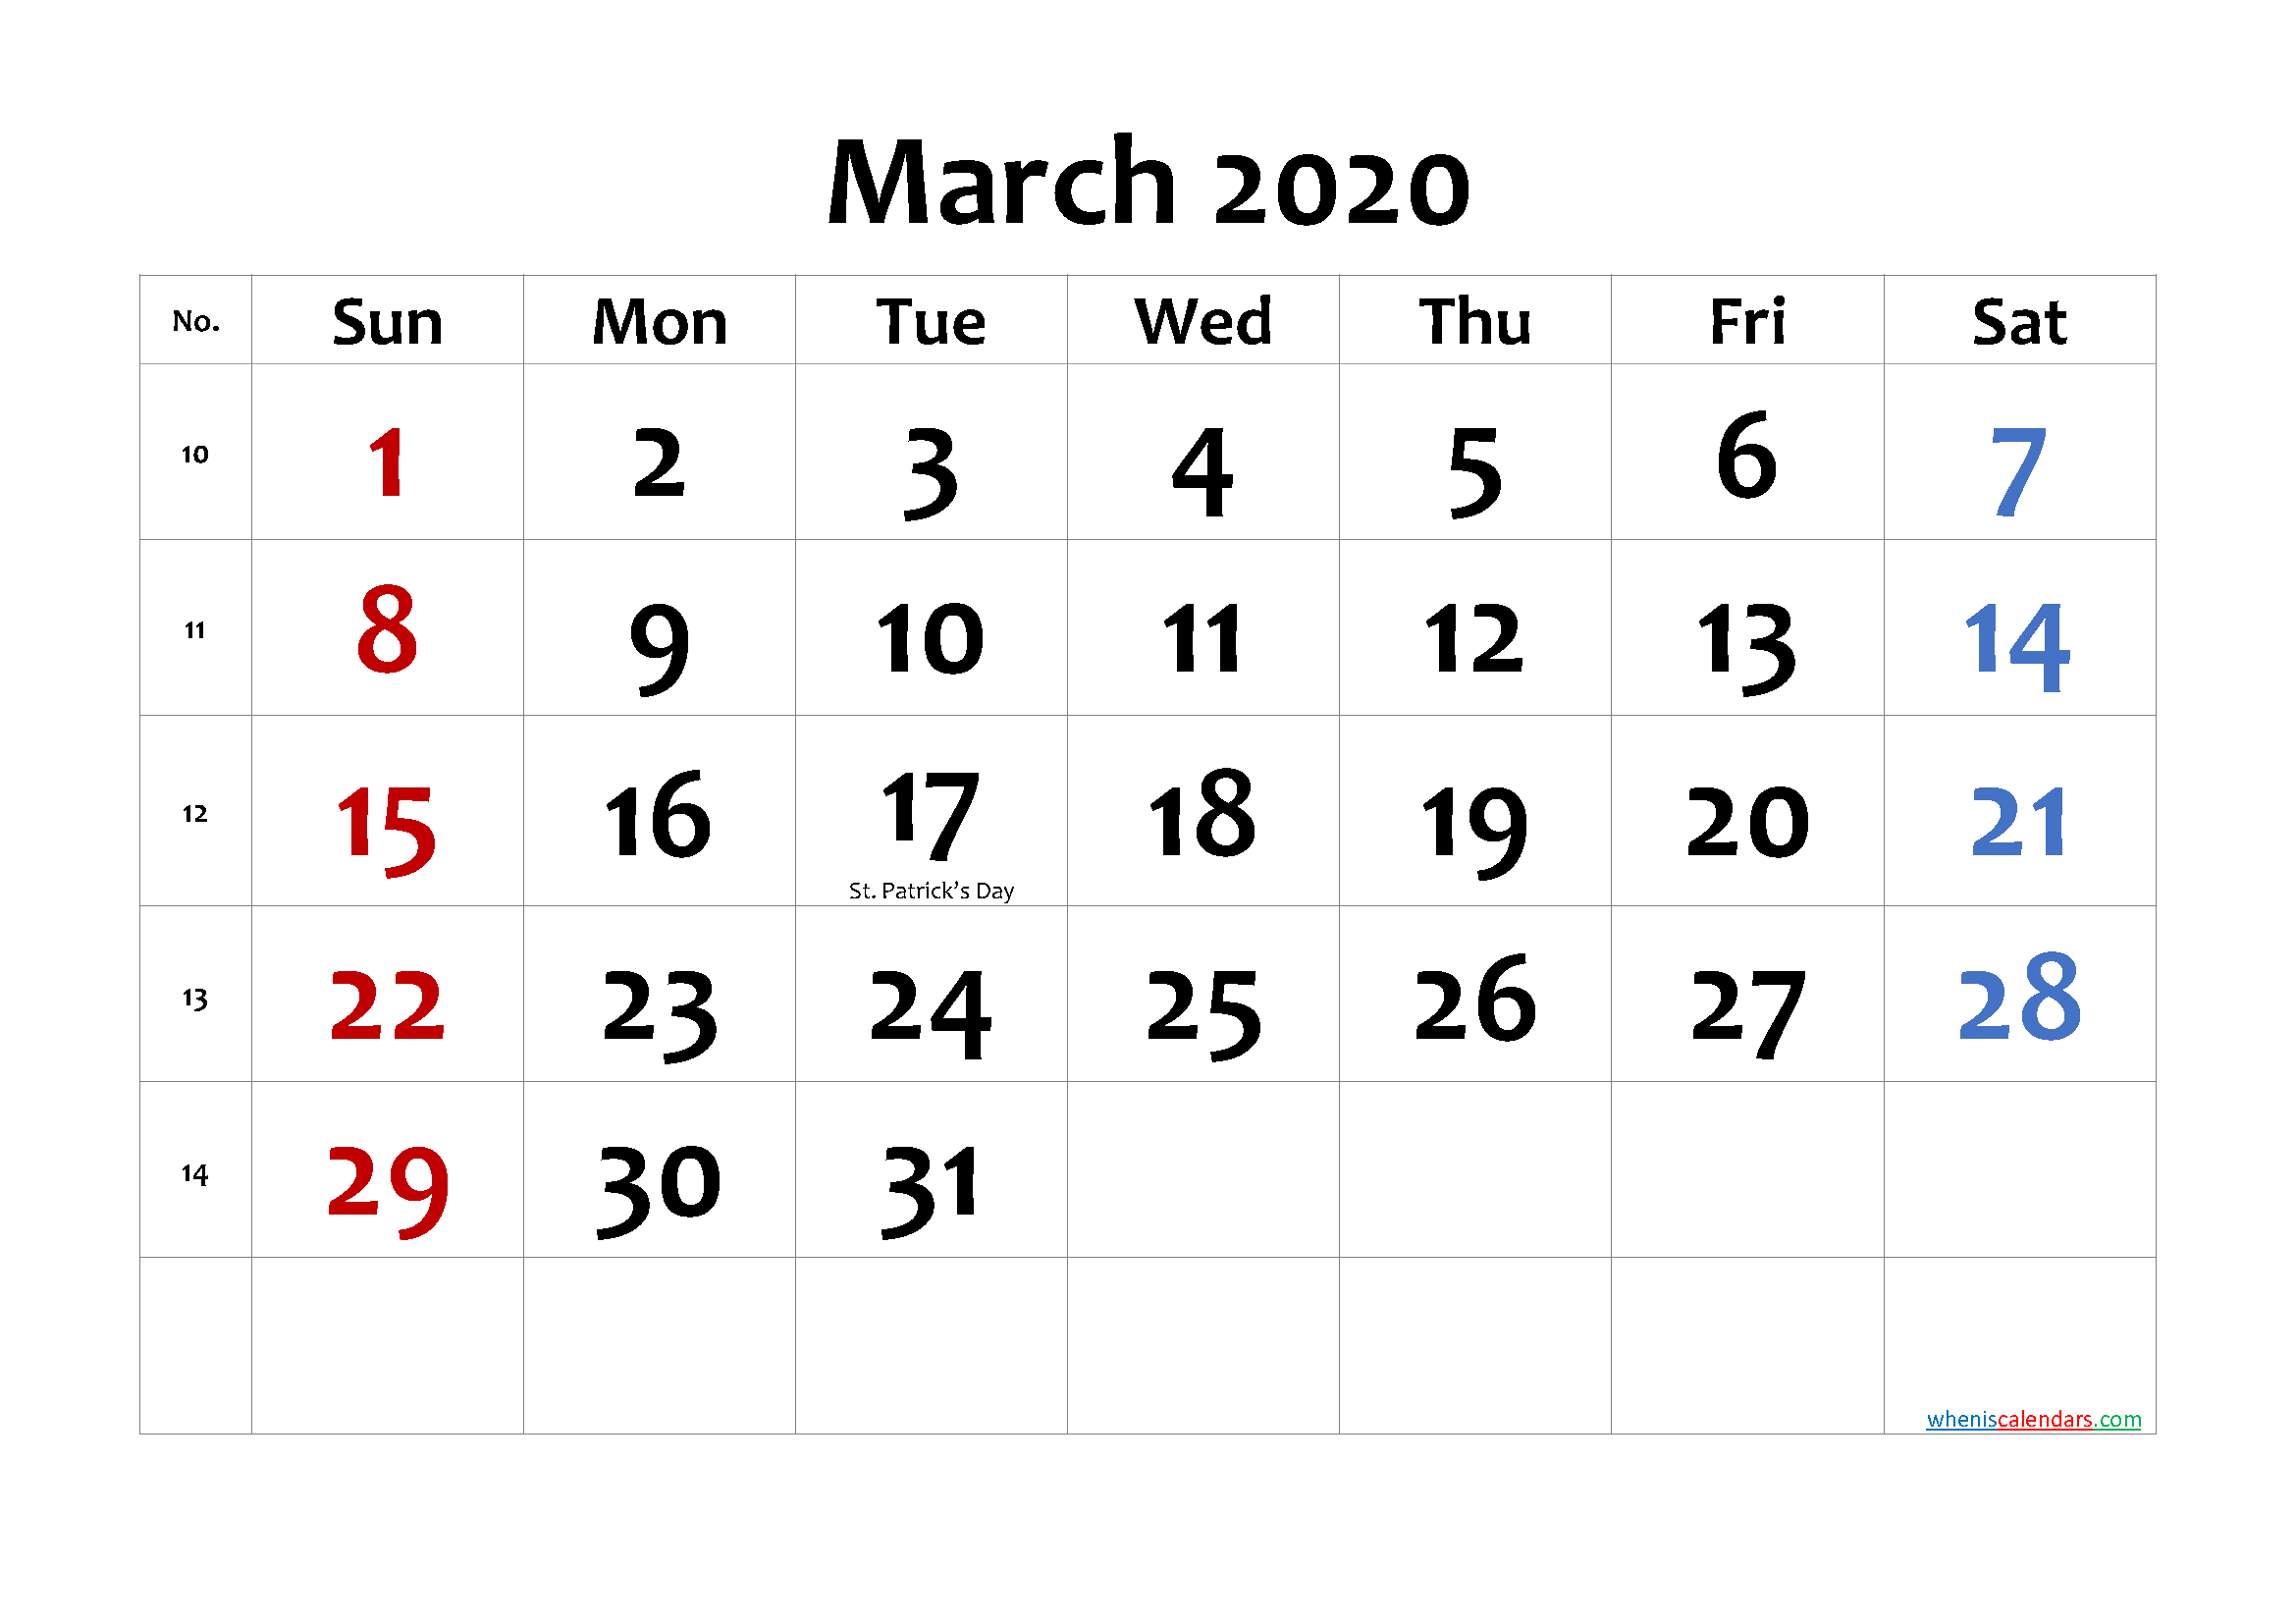 MARCH 2020 Printable Calendar with Holidays